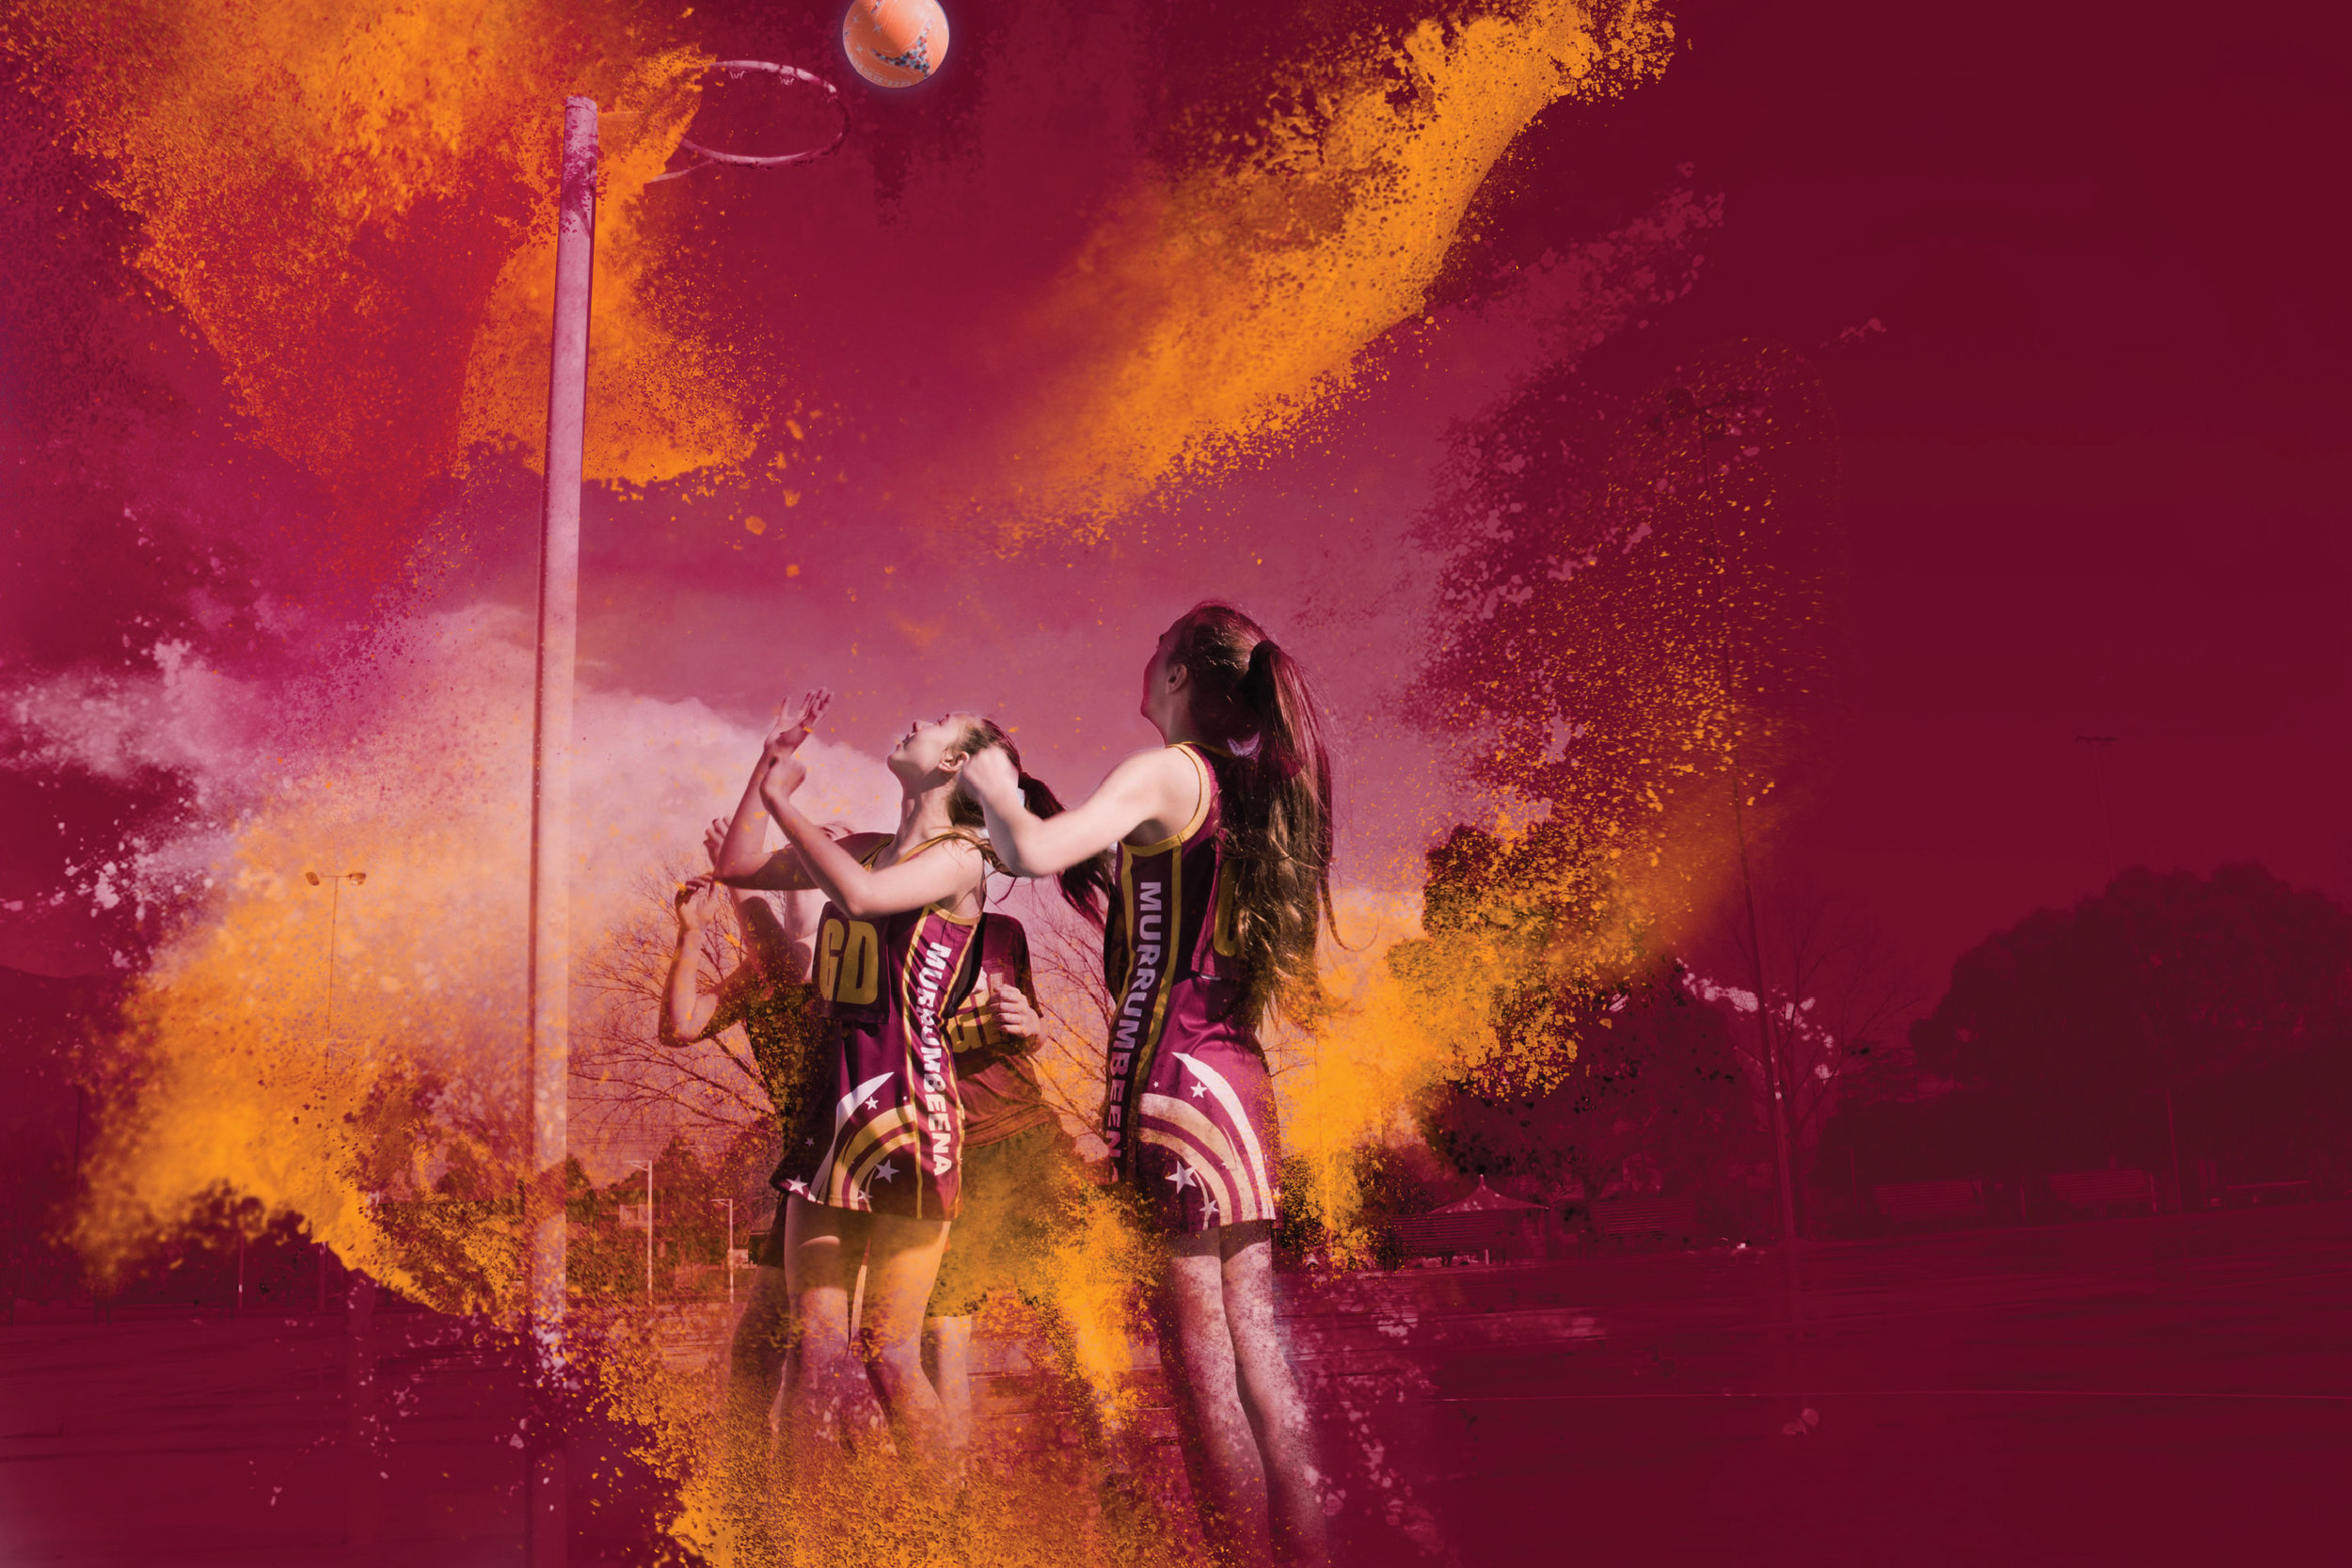 Murrumbeena Netball Club Imagery